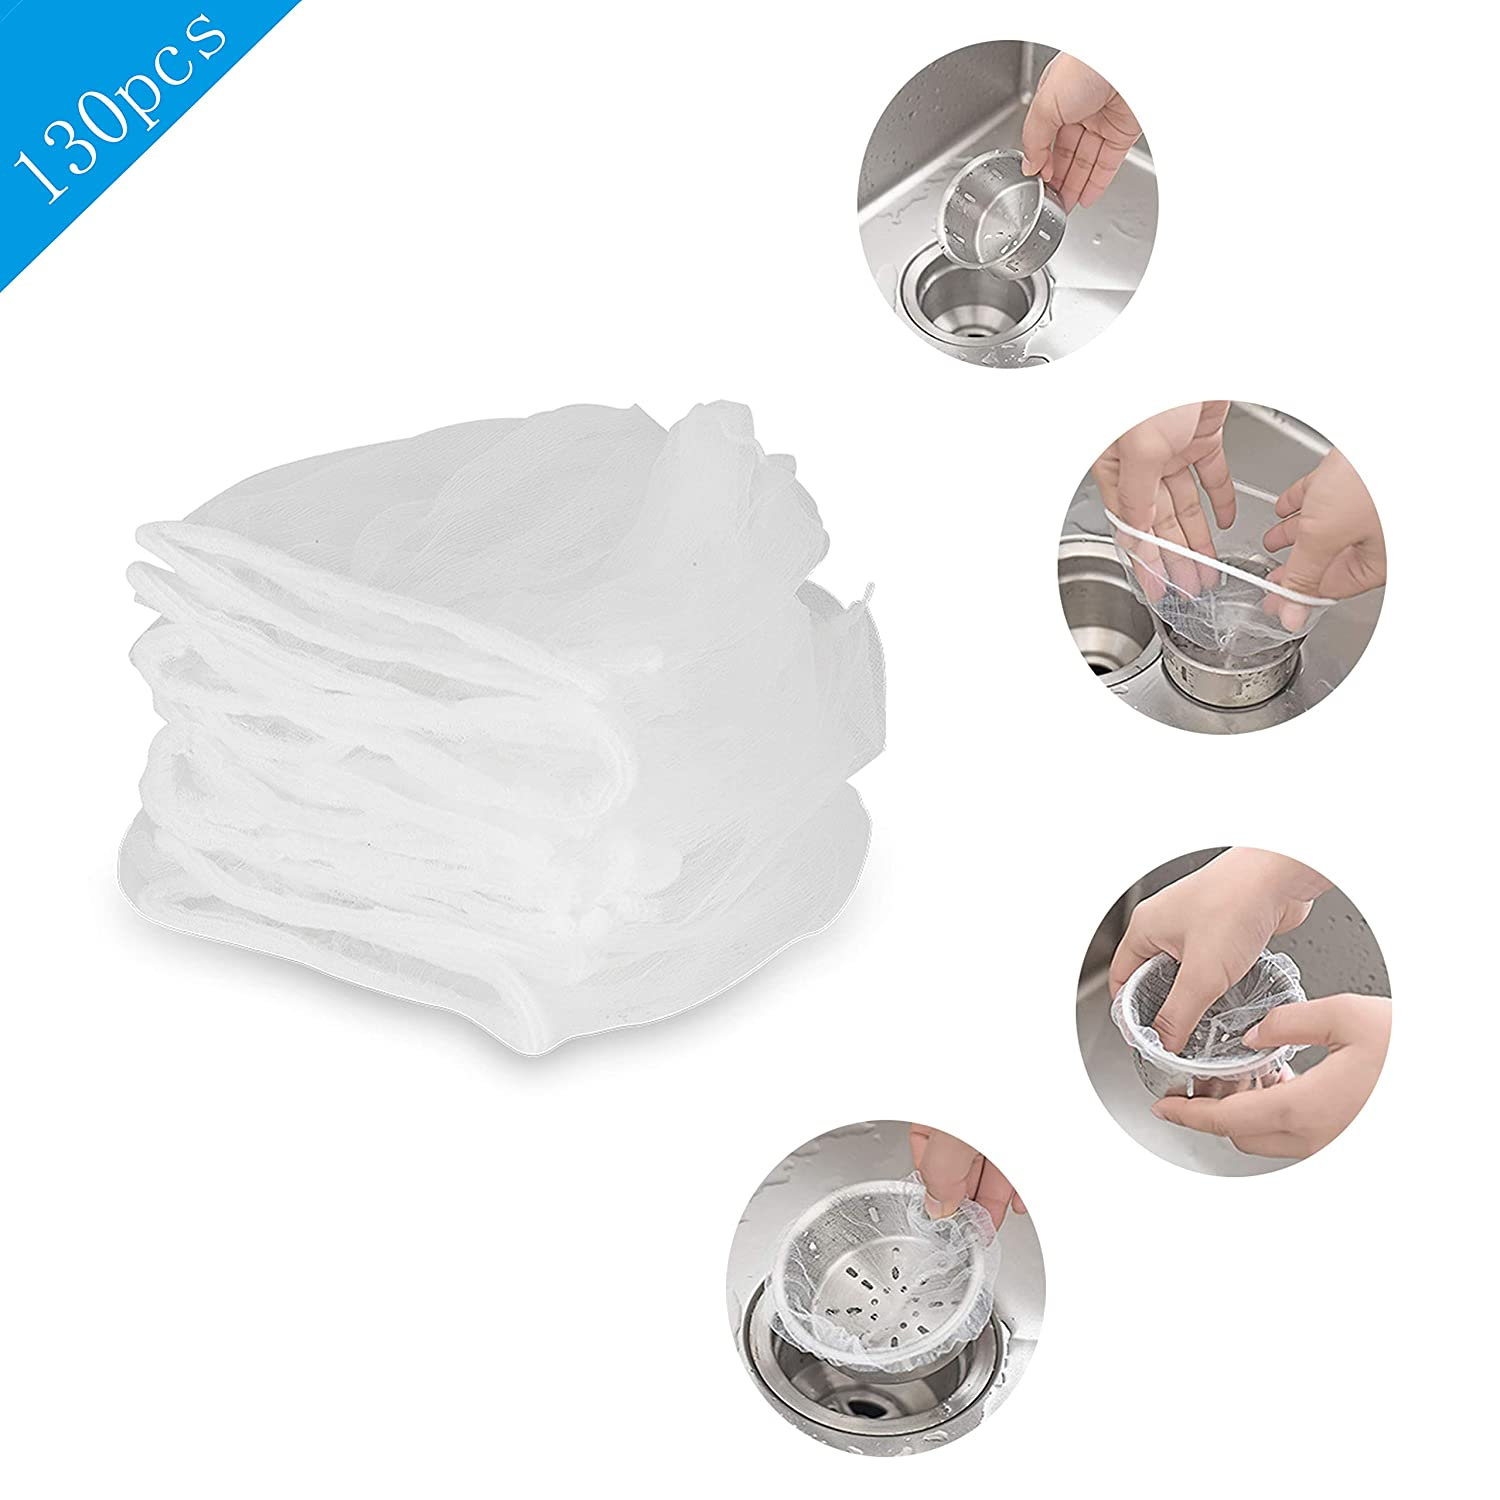 130 PCS Sink Strainer Bag, Disposable Mesh Sink Strainer Bags for Kitchen and Bathroom, Suitable for all Sizes of Sinks, White